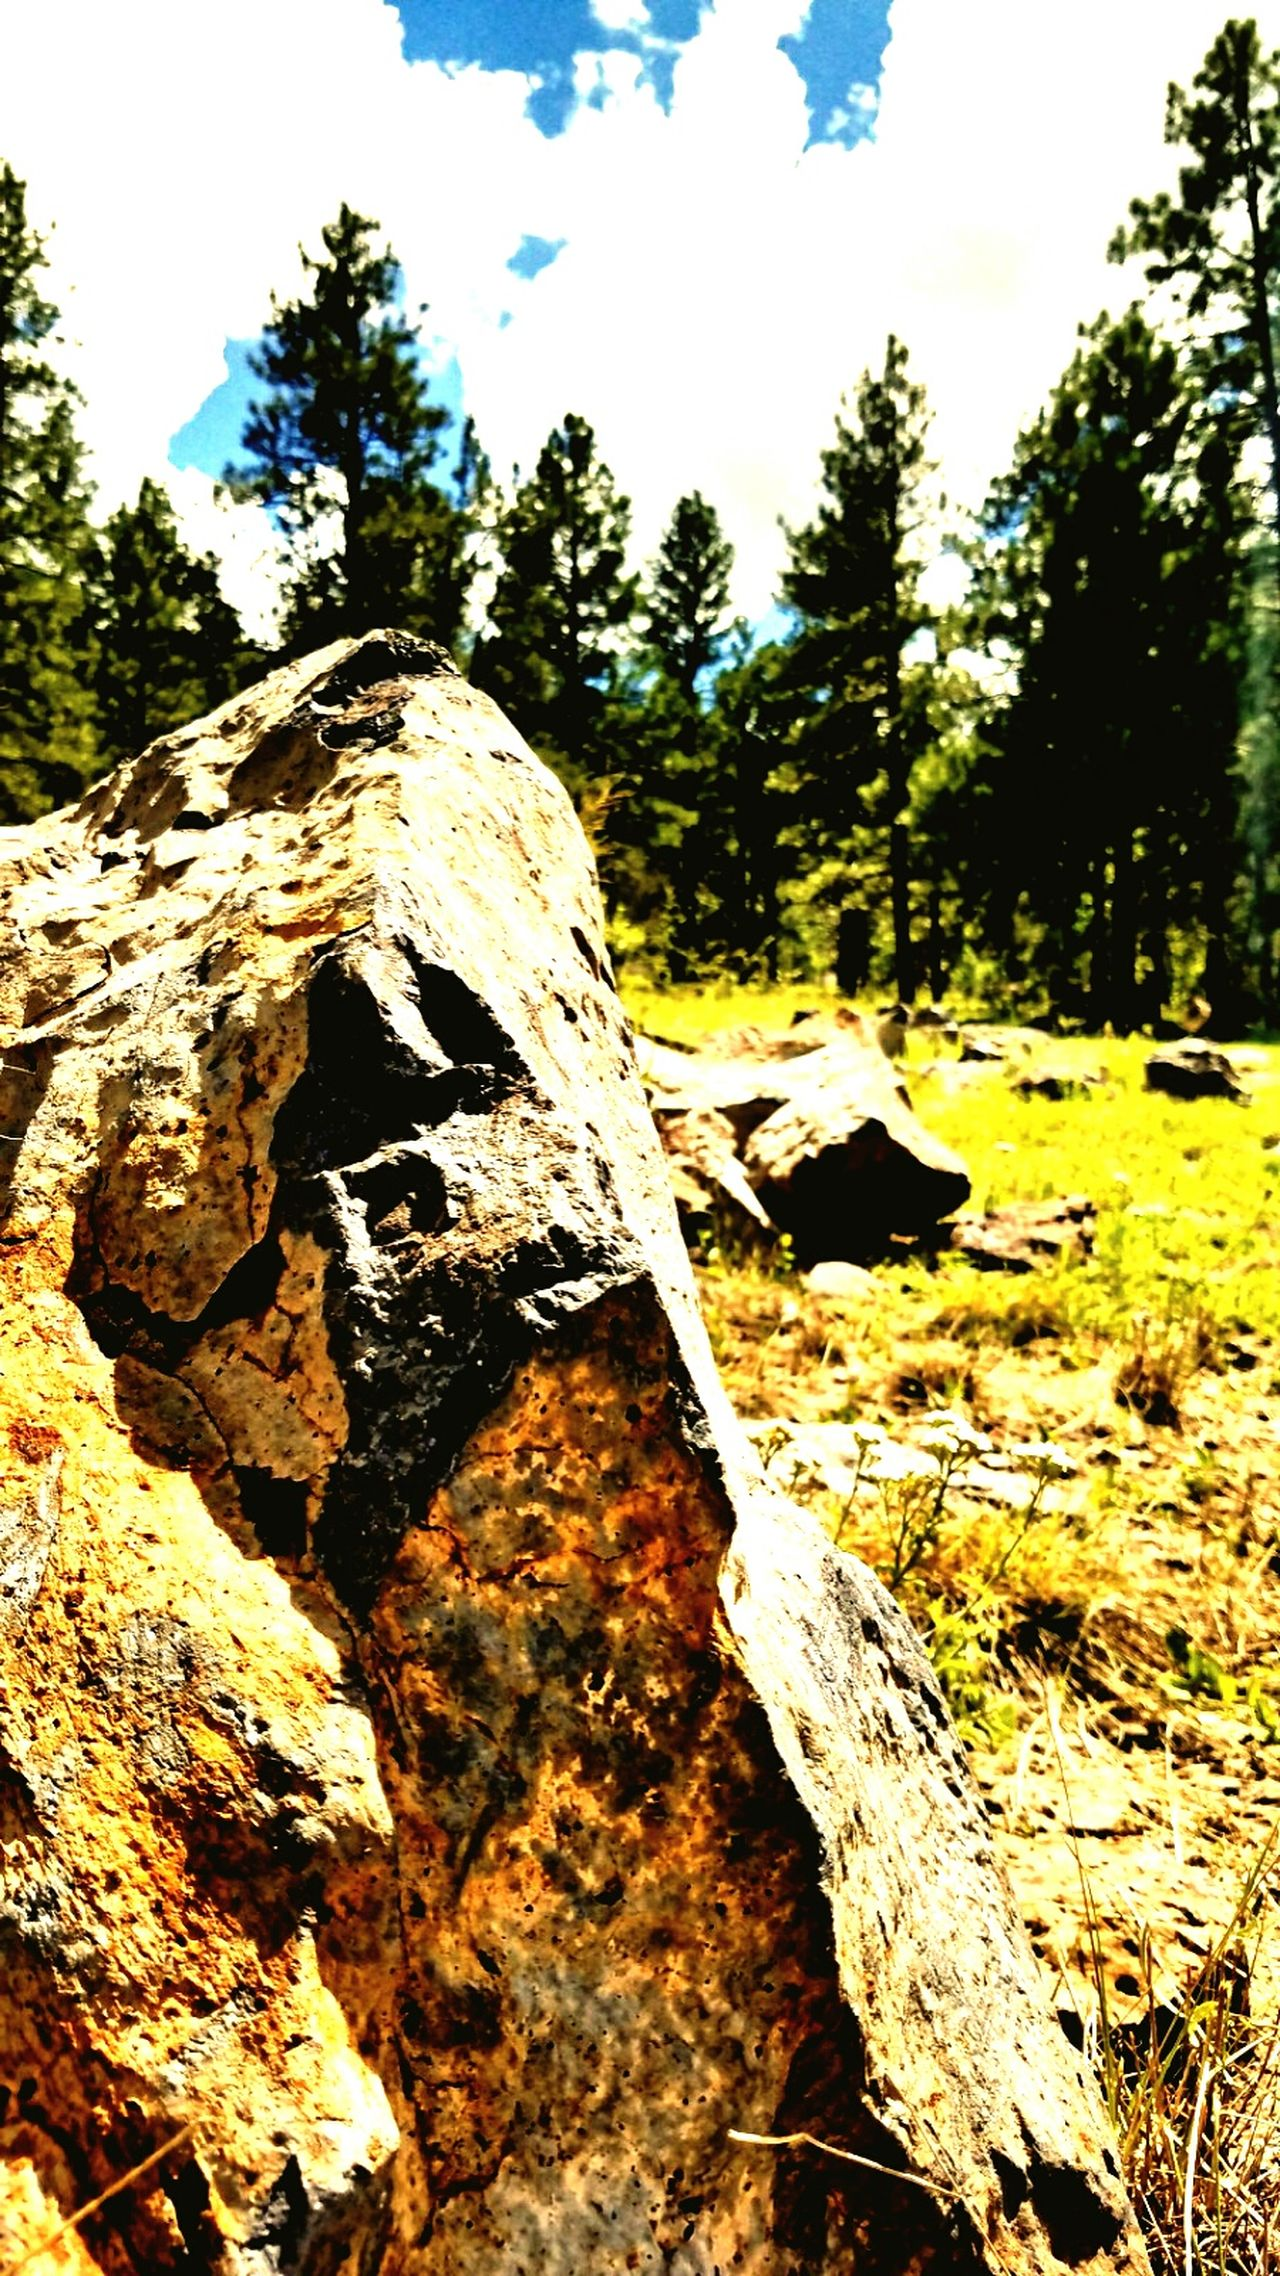 One individual rock. Sunlight Tree Nature Tree Trunk Sky Growth Day Close-up Wilderness Outdoors MyPhotography Pattern, Texture, Shape And Form LoveMyWork Rock Mywork Photooftheday Myphotography. Nature Scenics Rock - Object